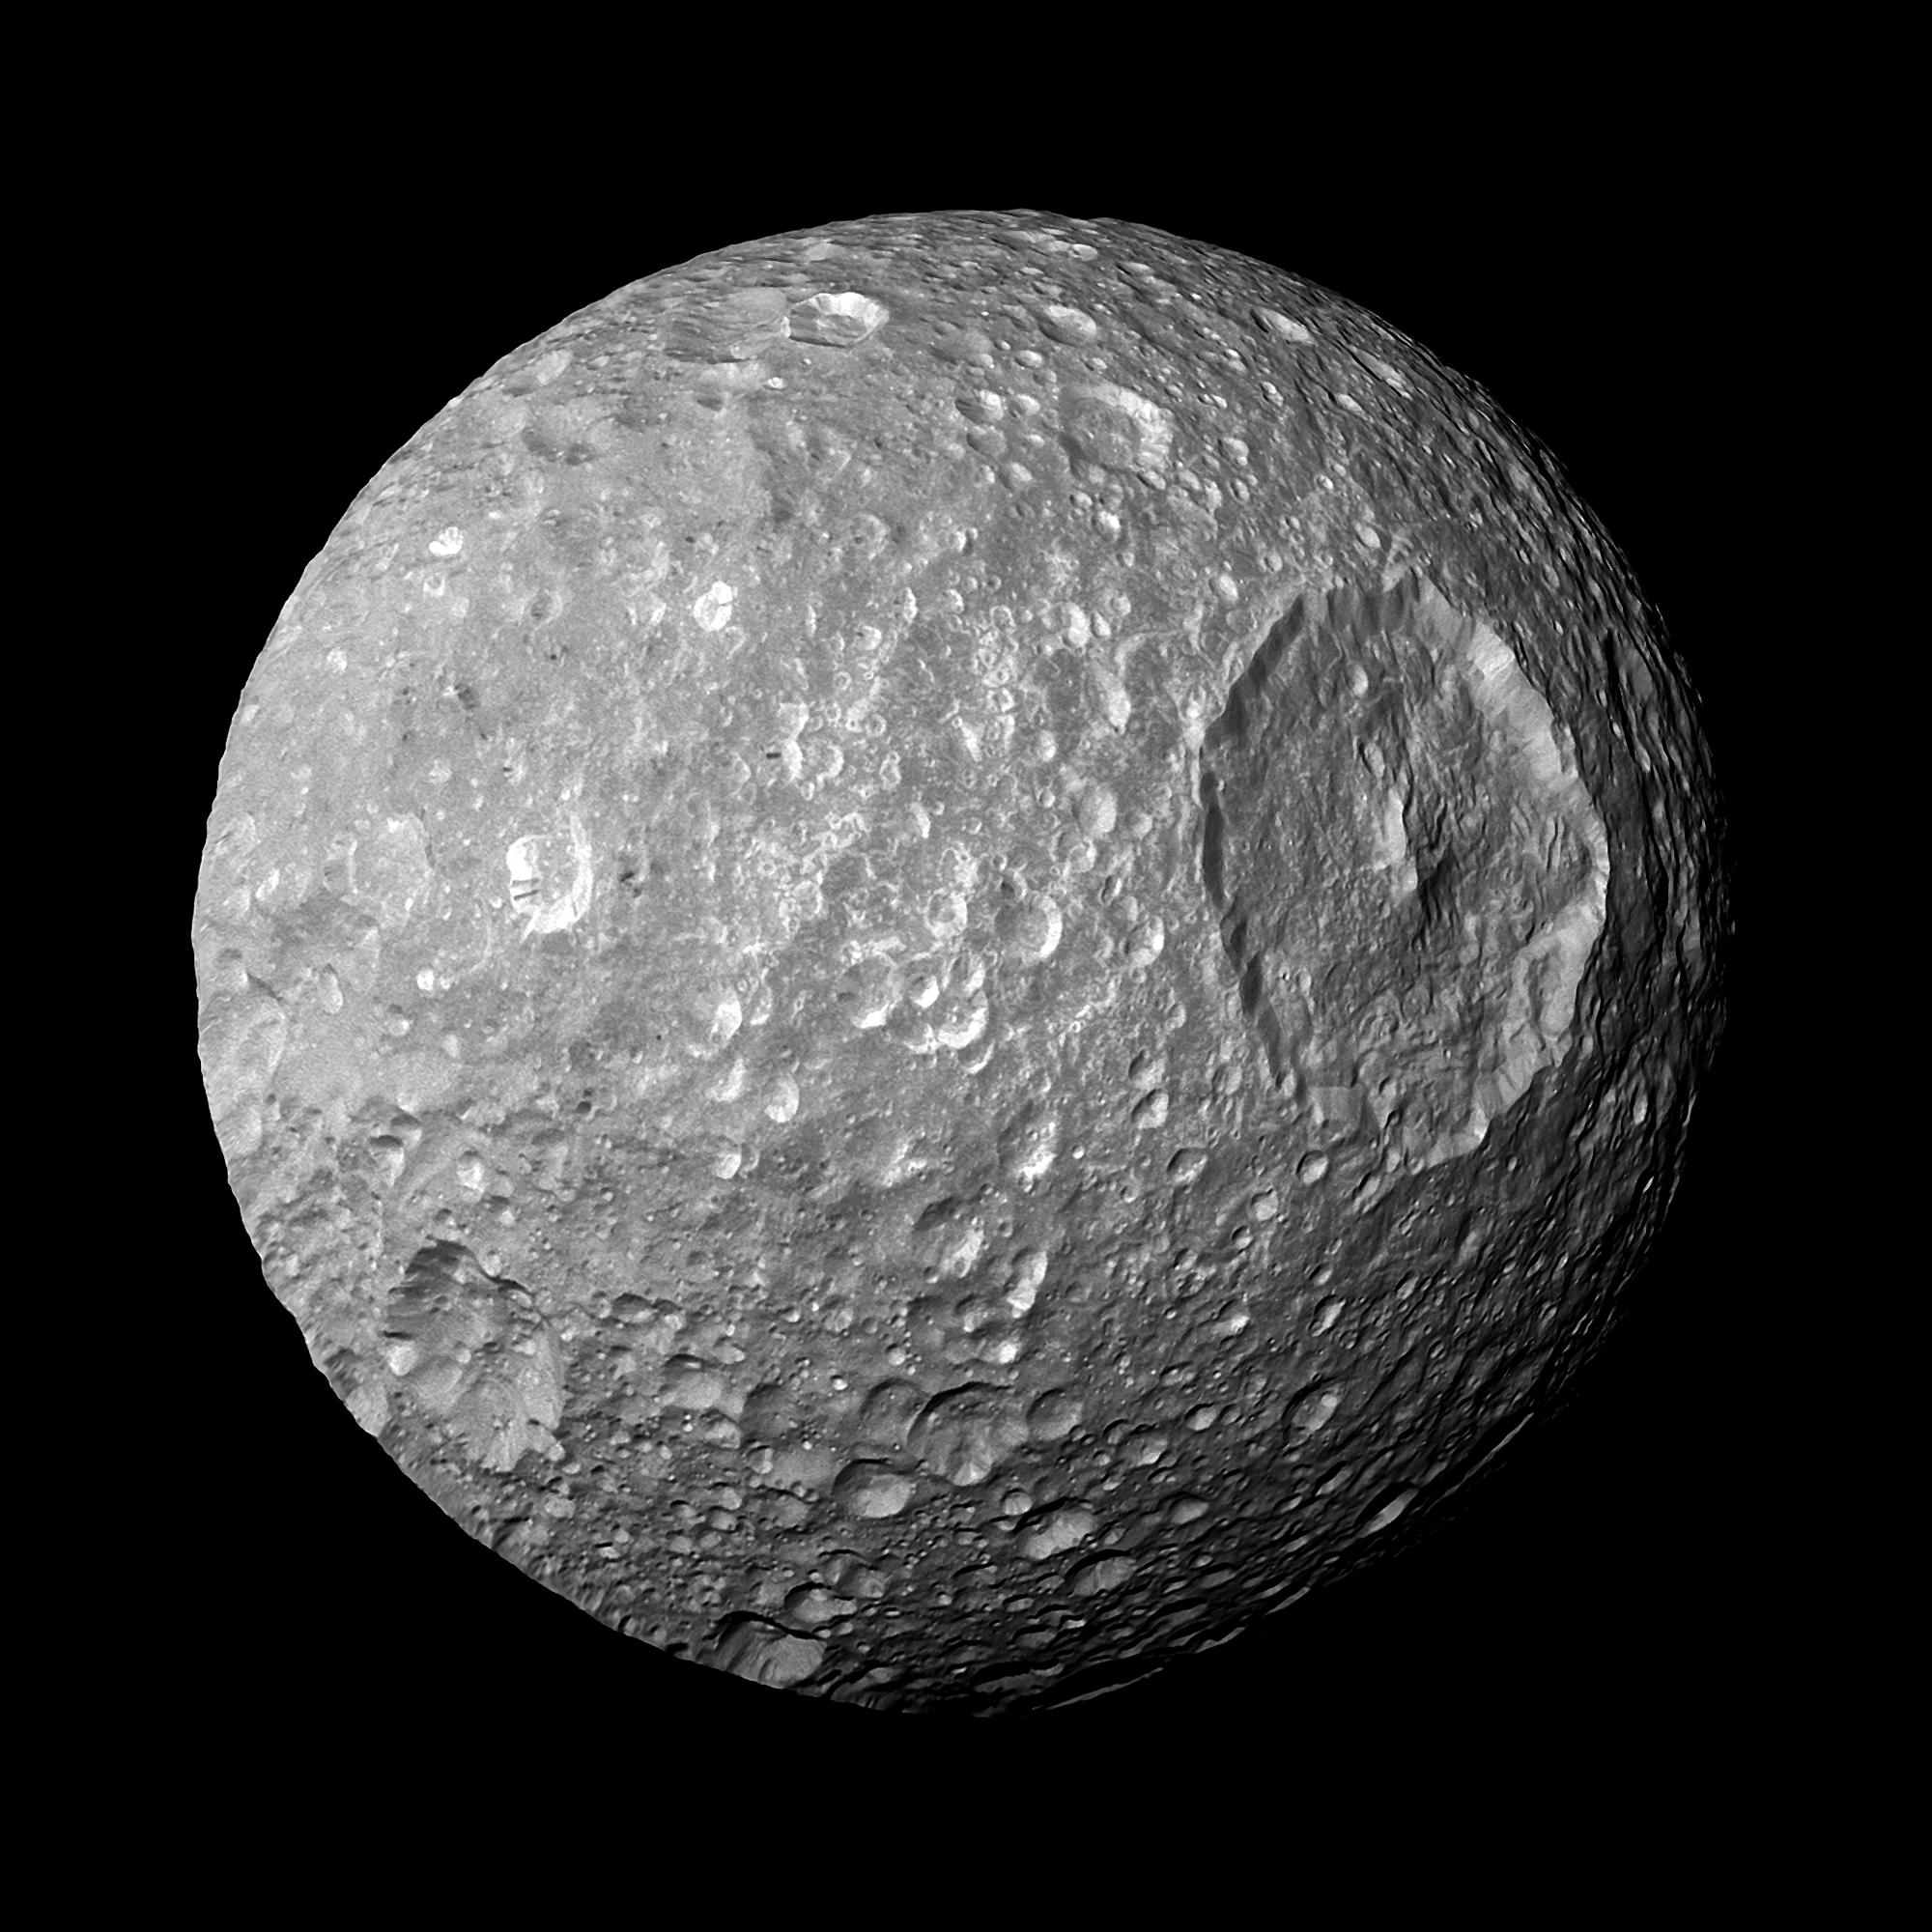 Flying By Saturn's 'Death Star' Moon Mimas